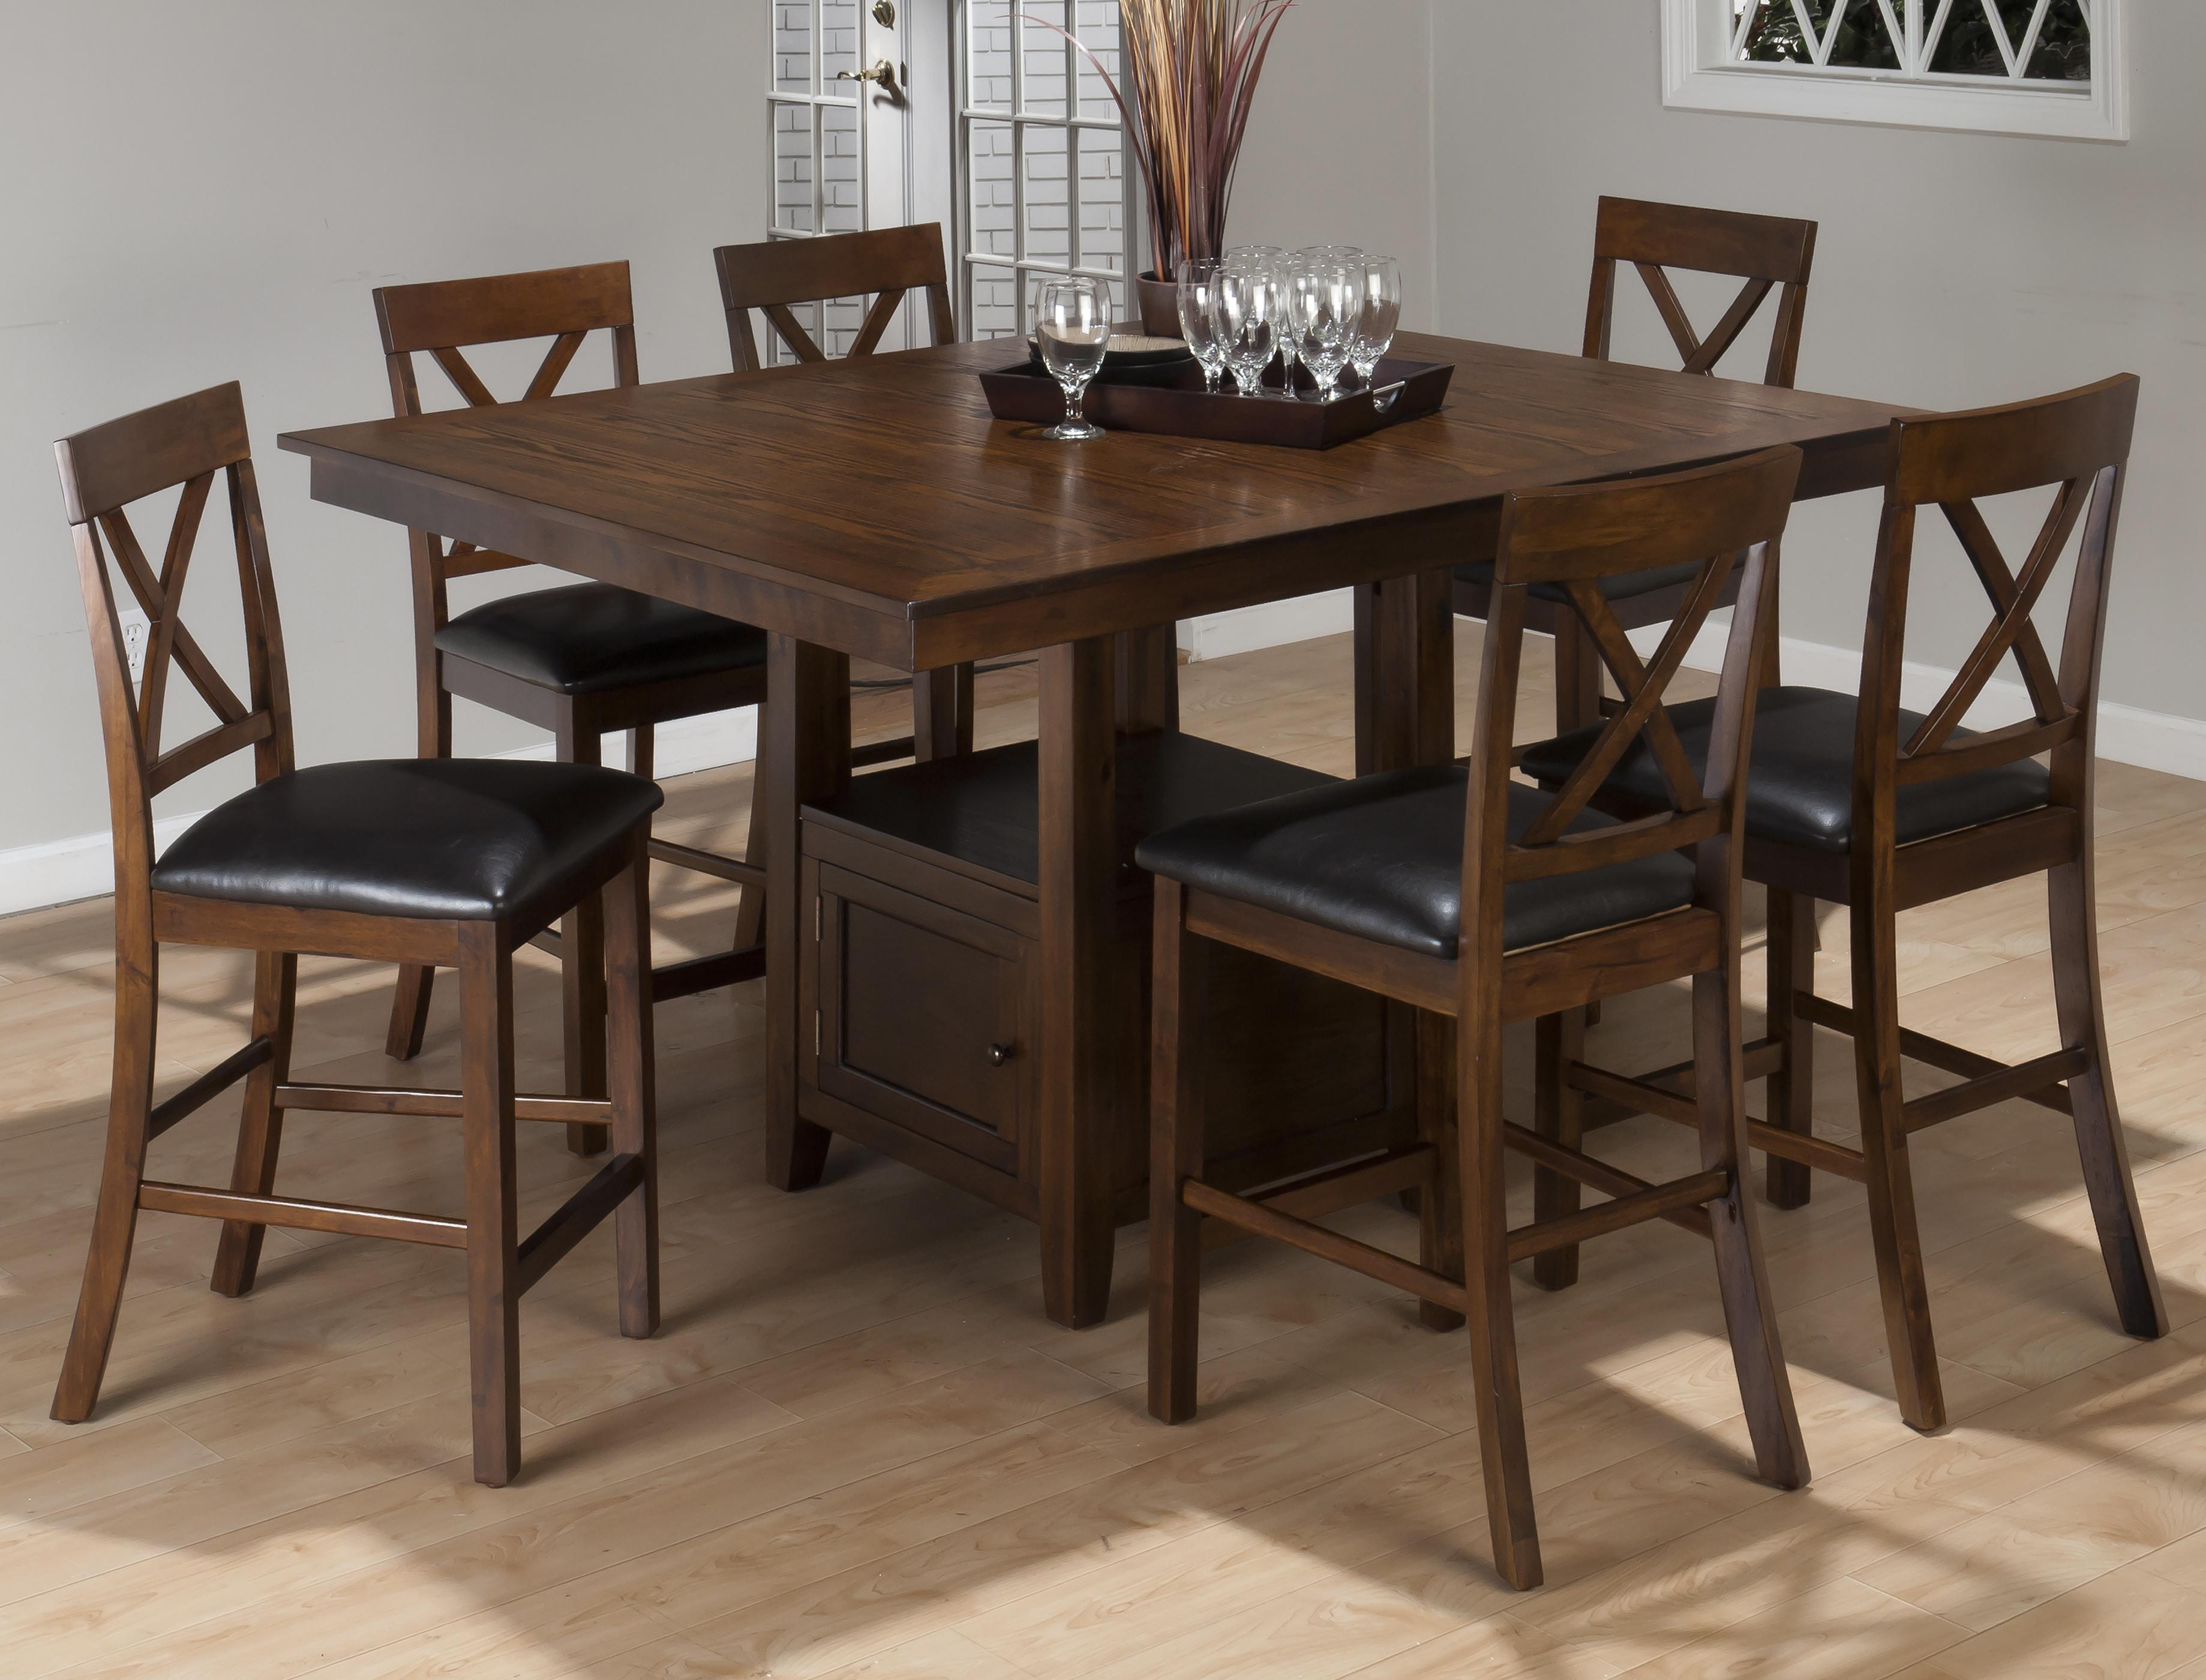 Jofran Olsen Oak 7-Piece Counter Height Dining Set - Item Number: 439-60B+T+6xBS103KD